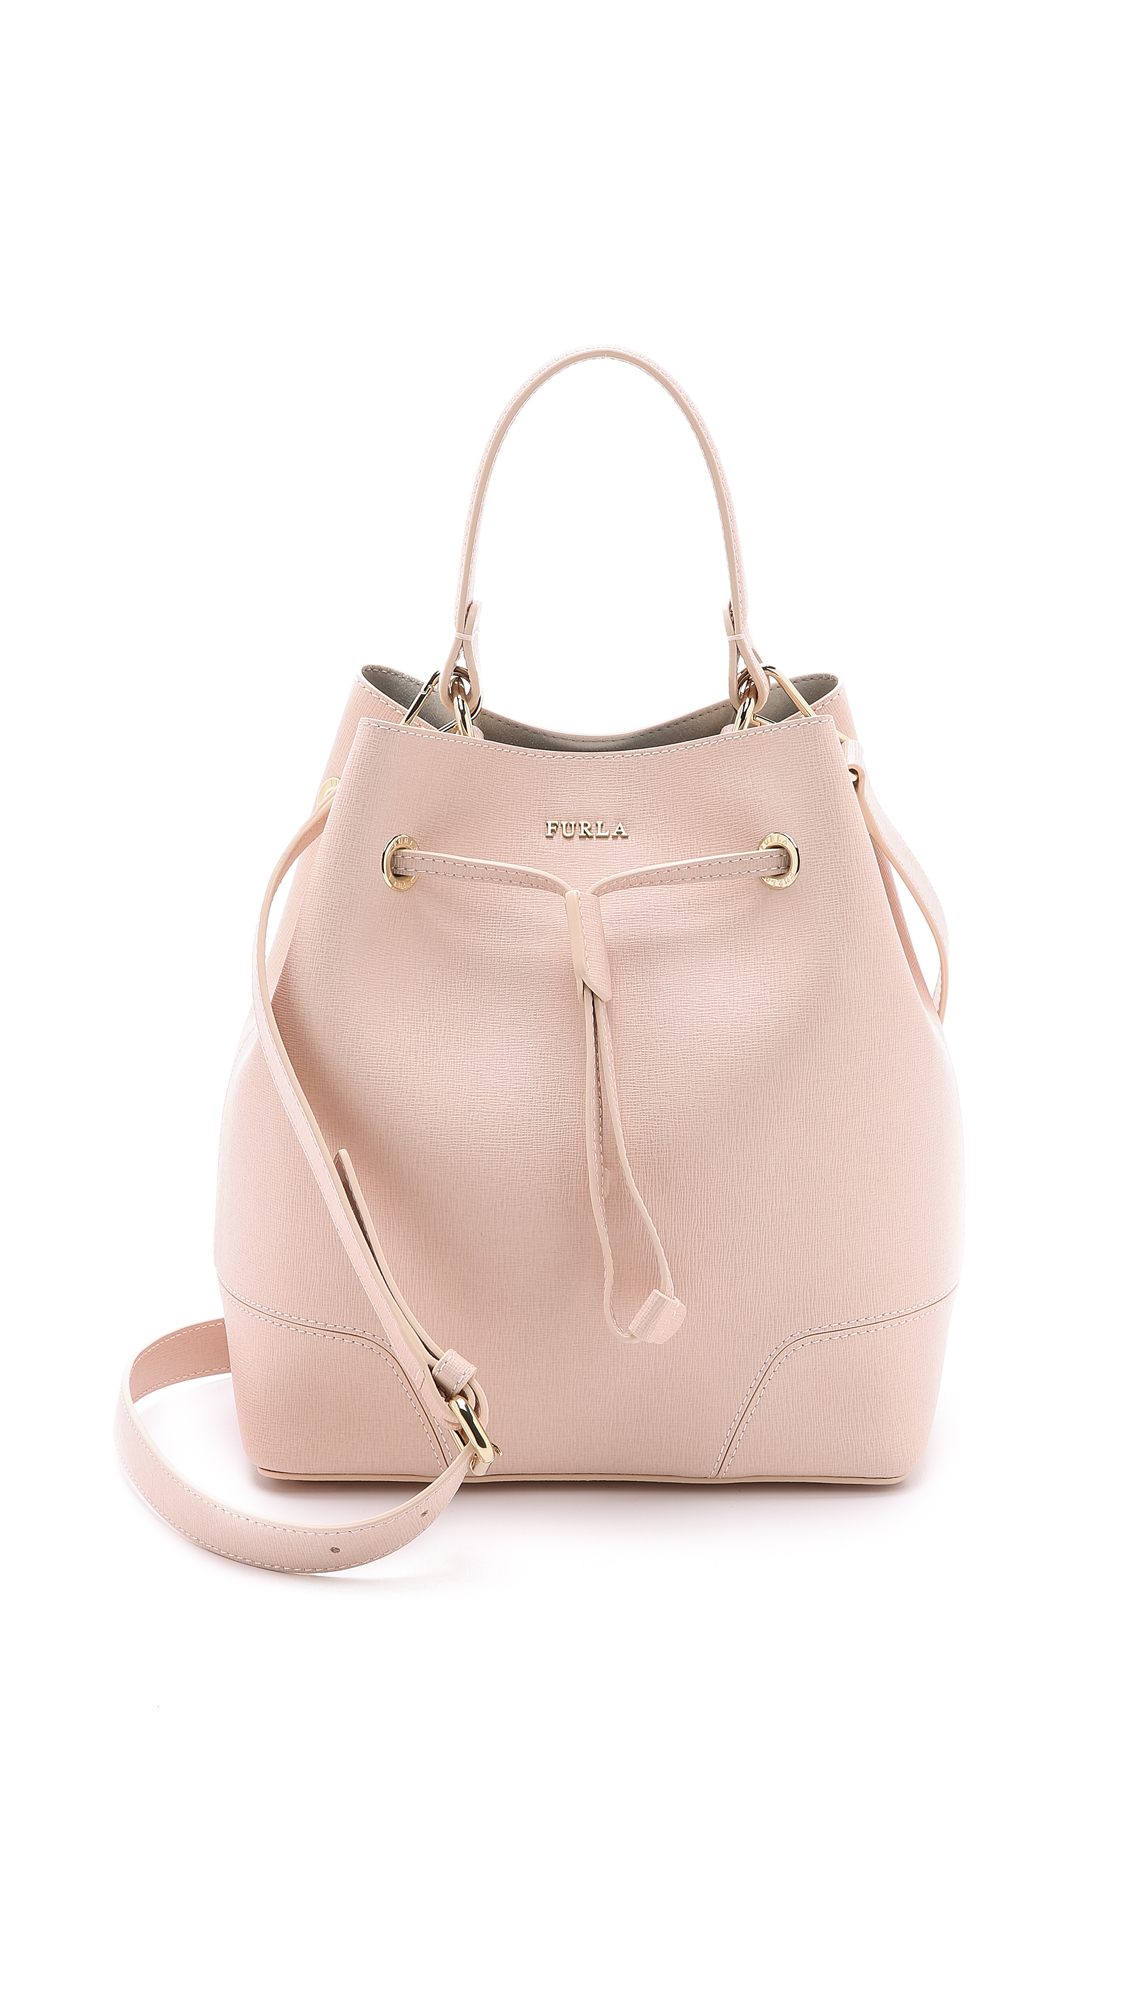 Furla Stacy Drawstring Bucket Bag - Pale Pink in Pink | Lyst